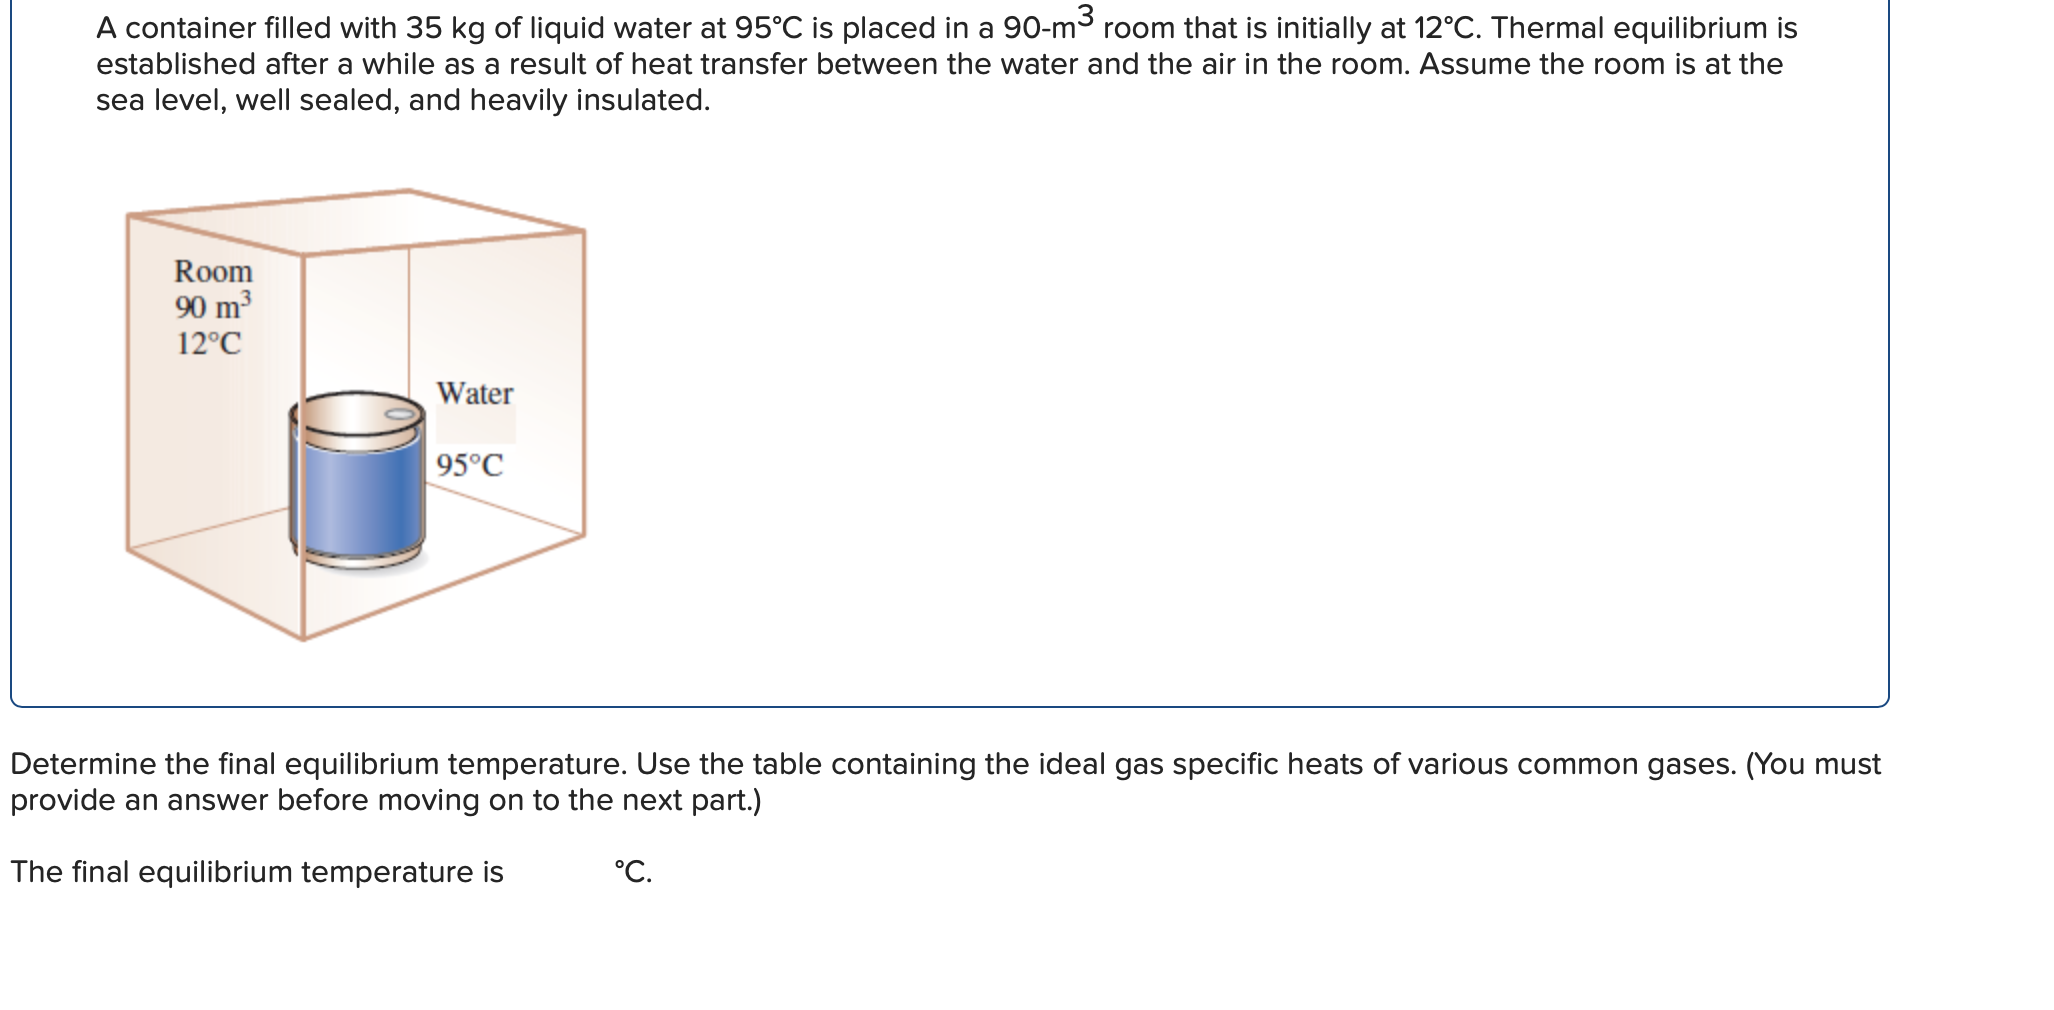 A container filled with 35 kg of liquid water at 95°C is placed in a 90-m room that is initially at 12°C. Thermal equilibrium is established after a while as a result of heat transfer between the water and the air in the room. Assume the room is at the sea level, well sealed, and heavily insulated. Room 90 m3 12°C Water 95°C Determine the final equilibrium temperature. Use the table containing the ideal gas specific heats of various common gases. (You must provide an answer before moving on to the next part.) The final equilibrium ten °С. ature is